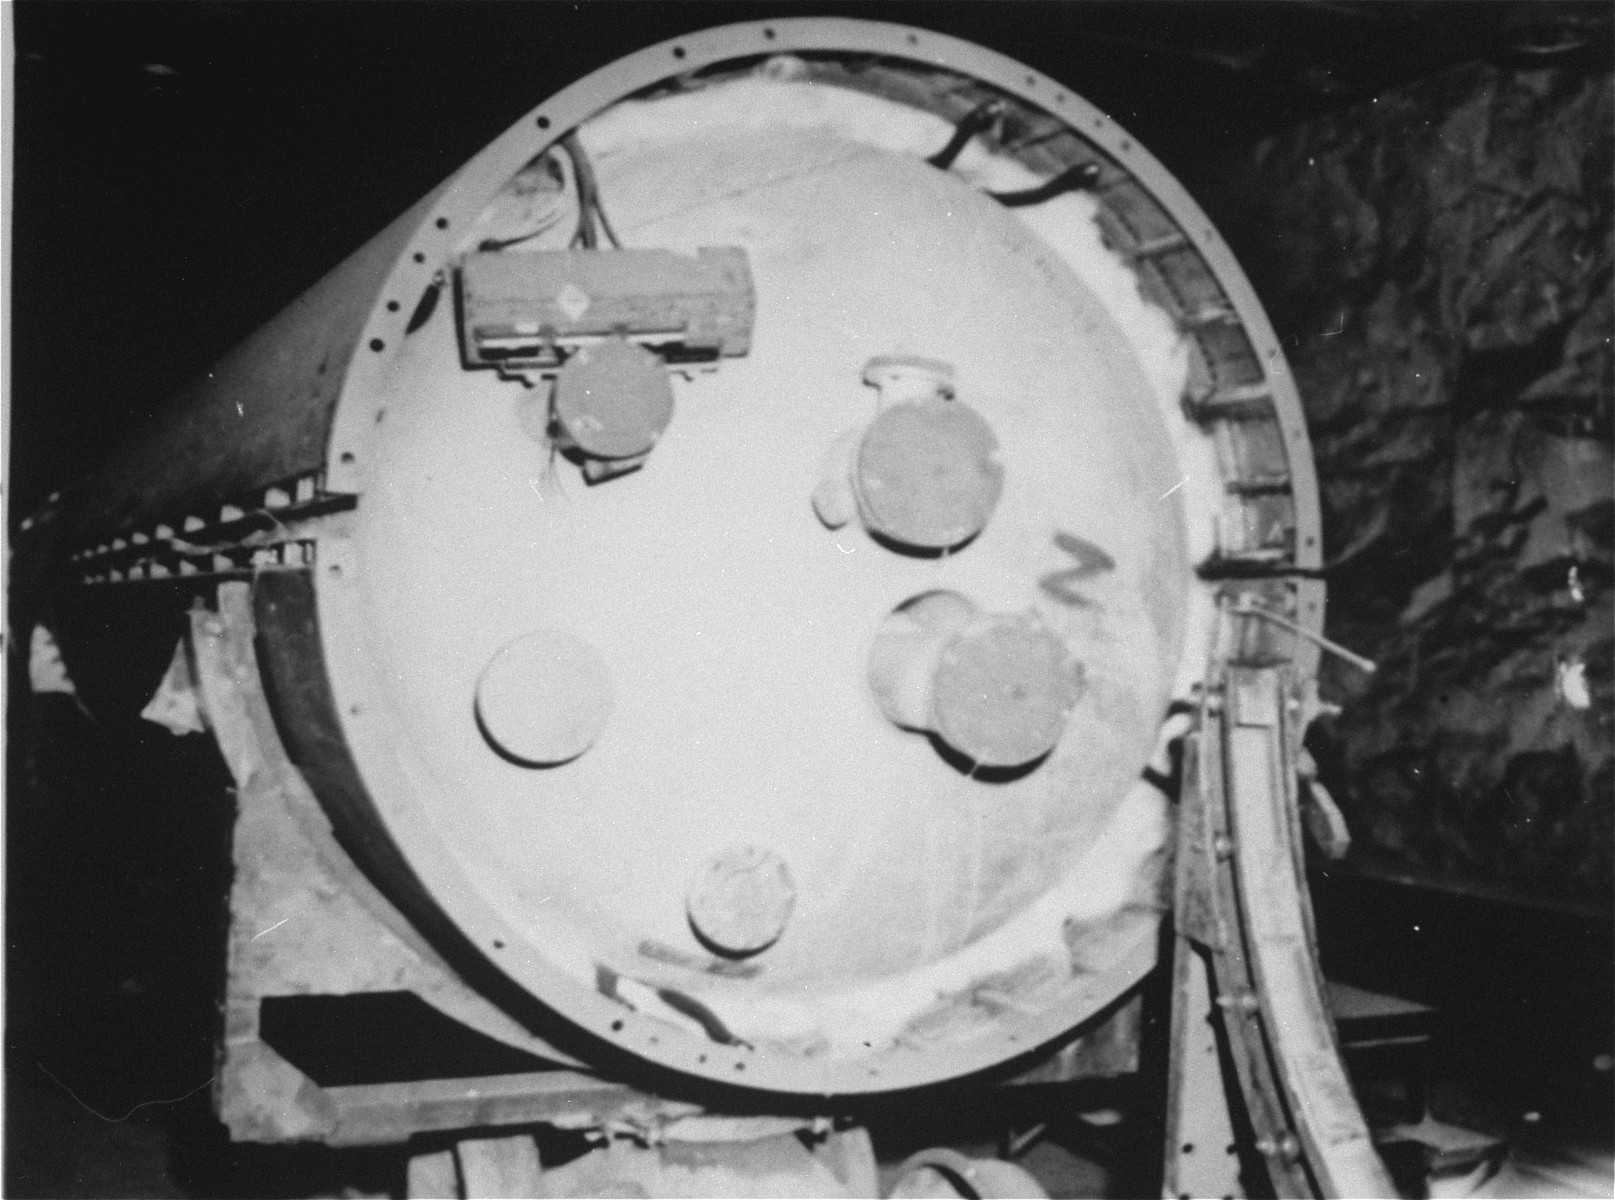 The center section, showing the oxygen tank, of a V-2 rocket in the underground rocket factory at Dora-Mittelbau.